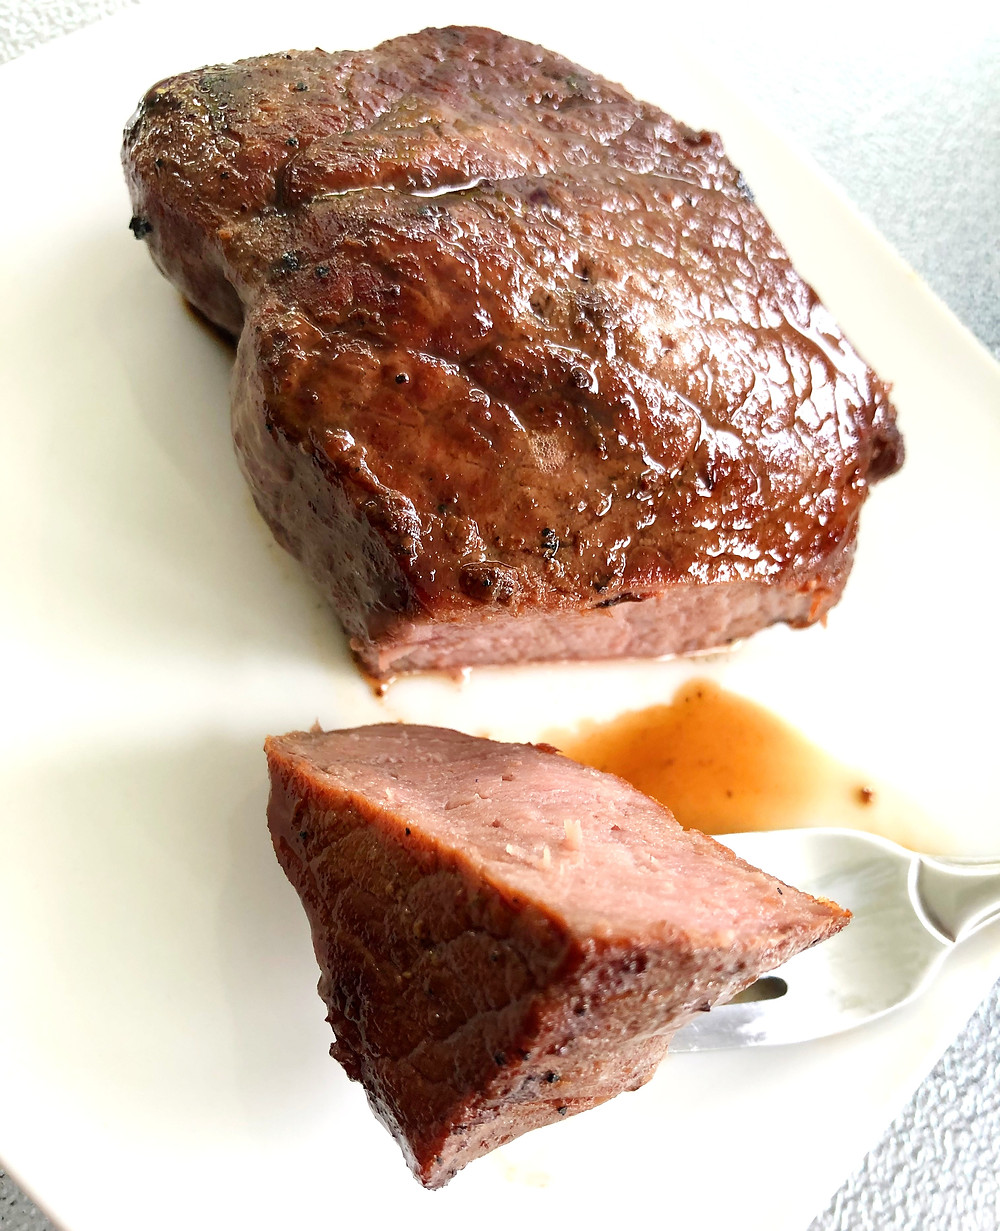 A grilled steak cut sits on a white plate, with a piece cut and ready to eat on a silver fork. Brown juices run onto white plate from the prepared meat.